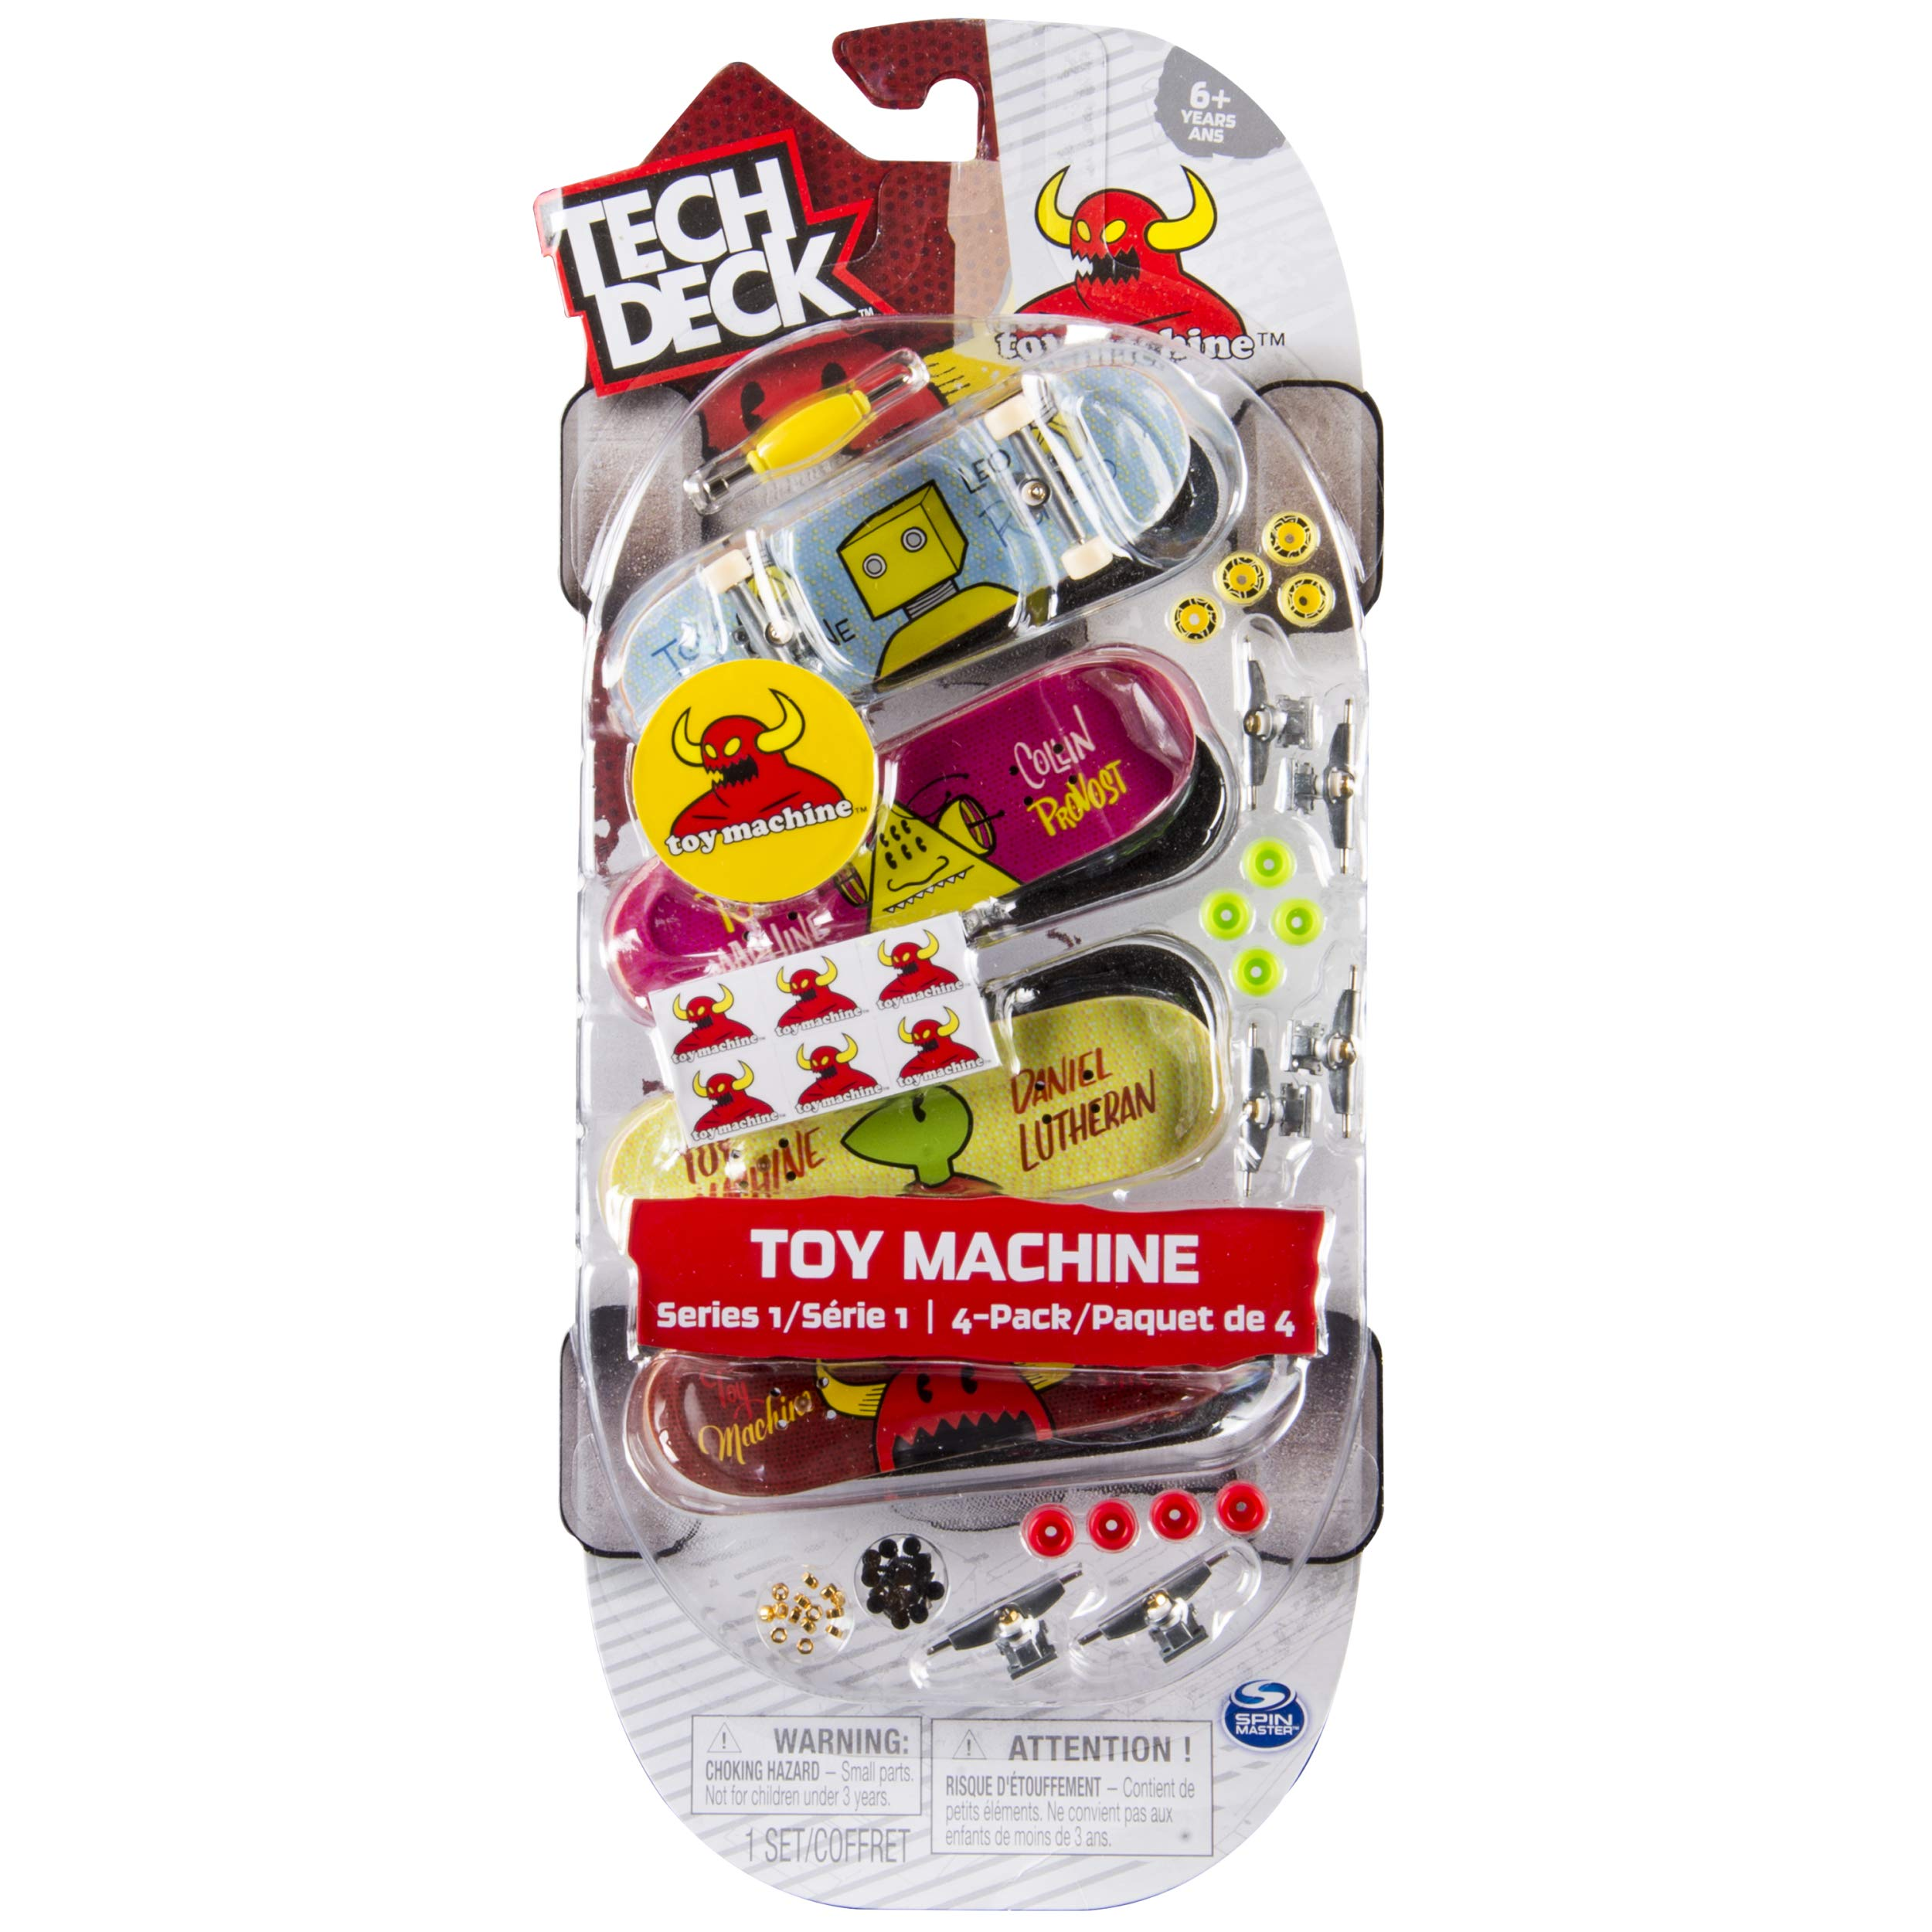 Tech Deck - 96mm Fingerboards - 4-Pack - Toy Machine by TECH DECK (Image #1)